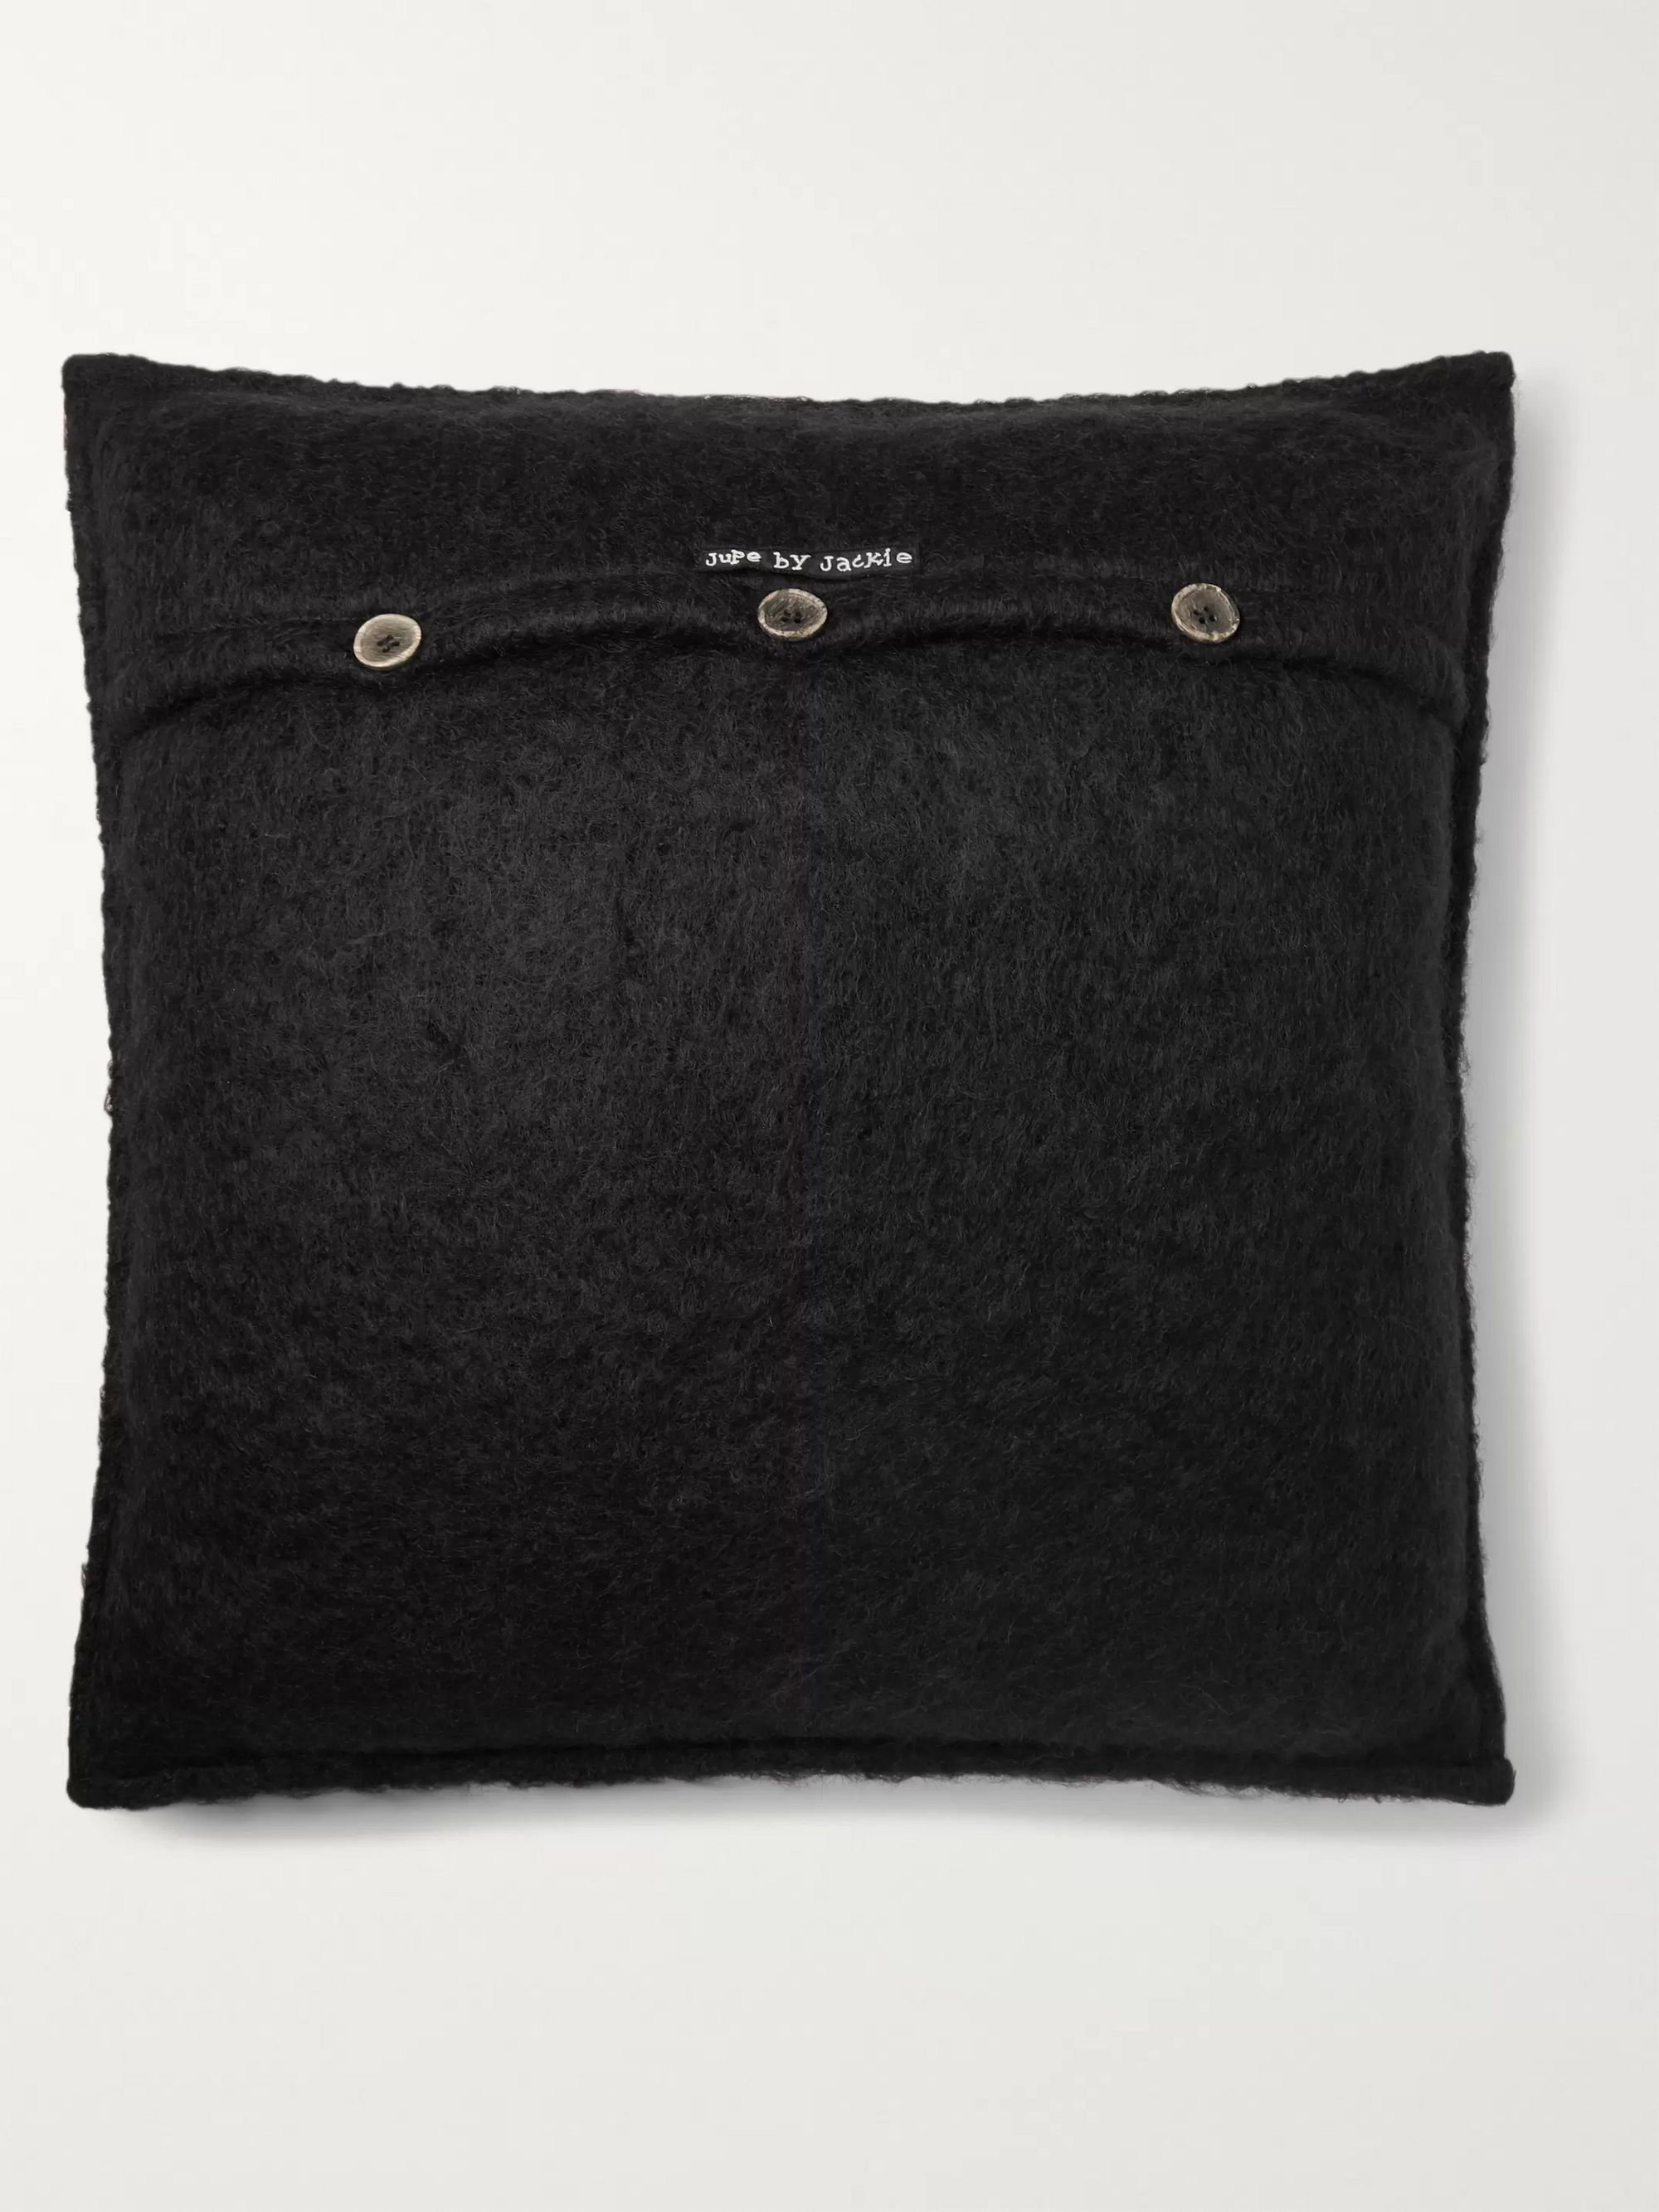 Jupe by Jackie Hocken Embroidered Mohair Cushion Cover